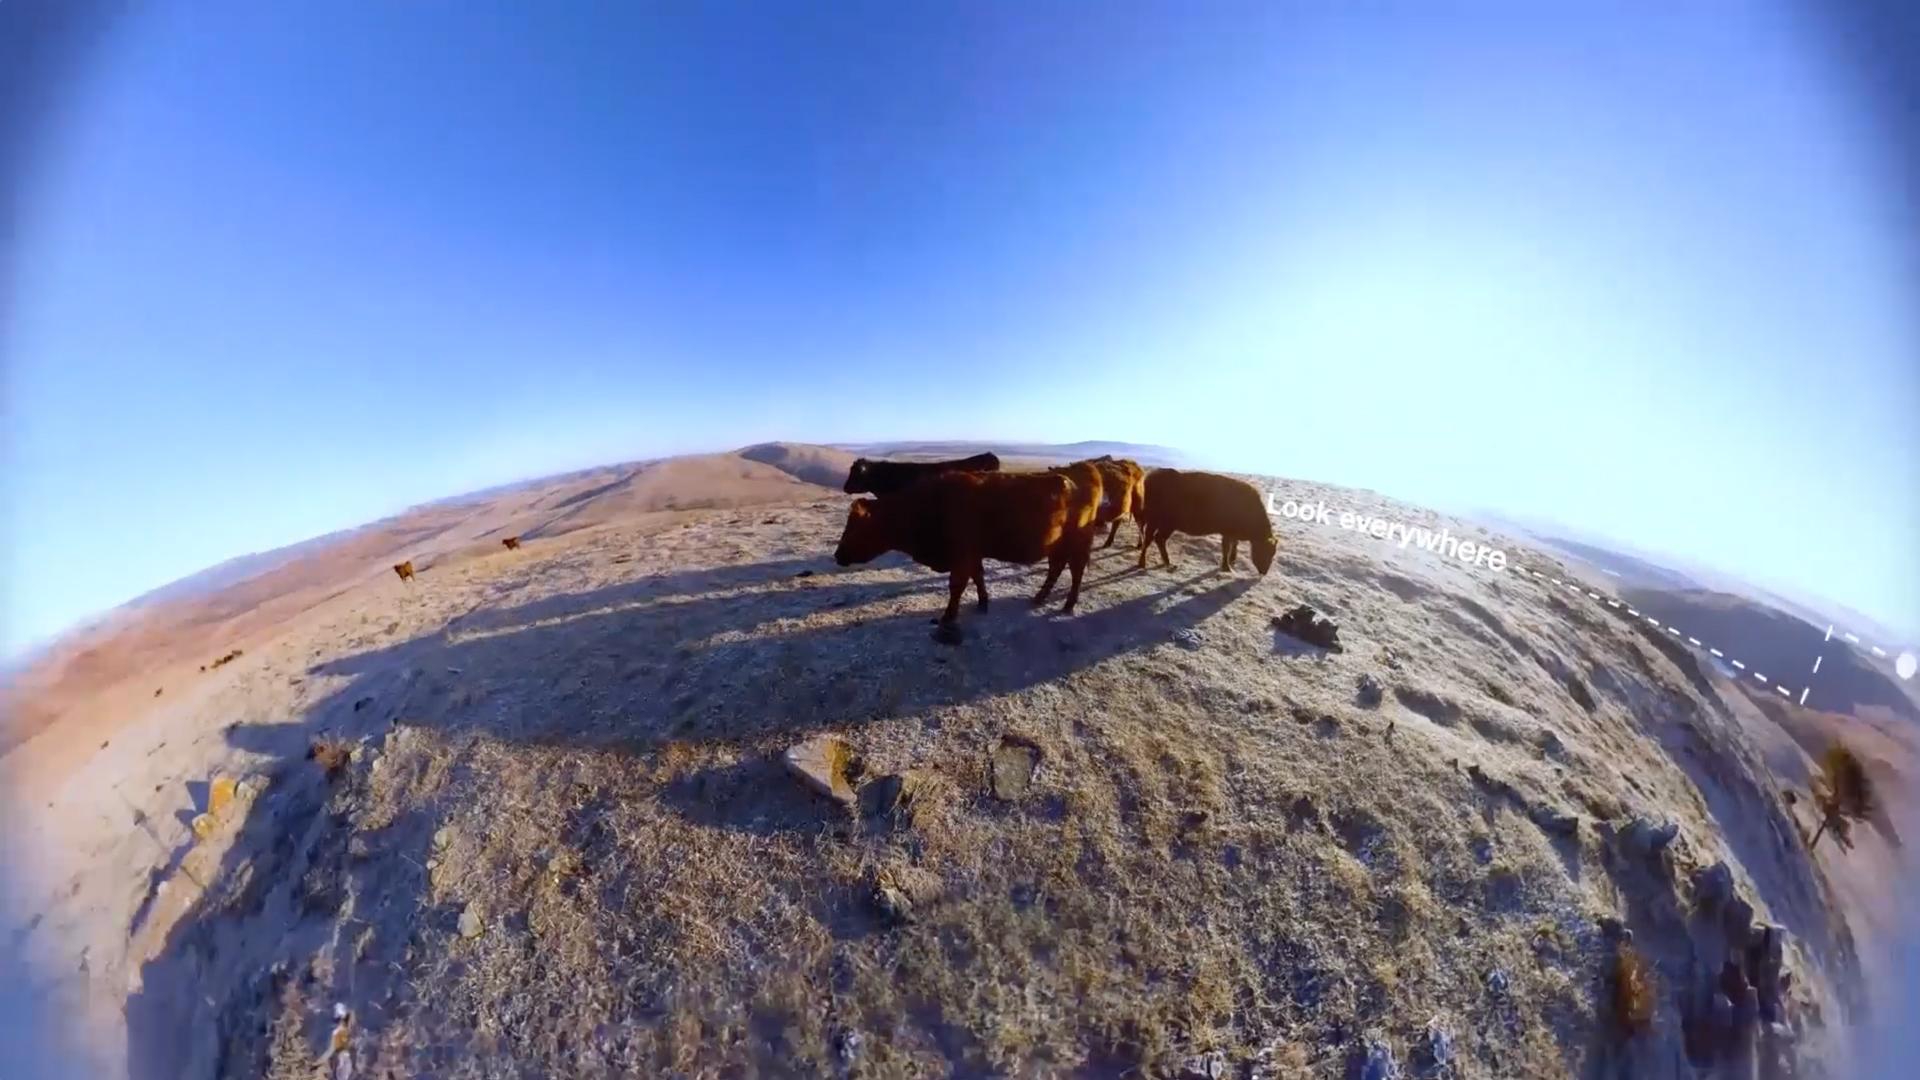 360˚ view of cattle